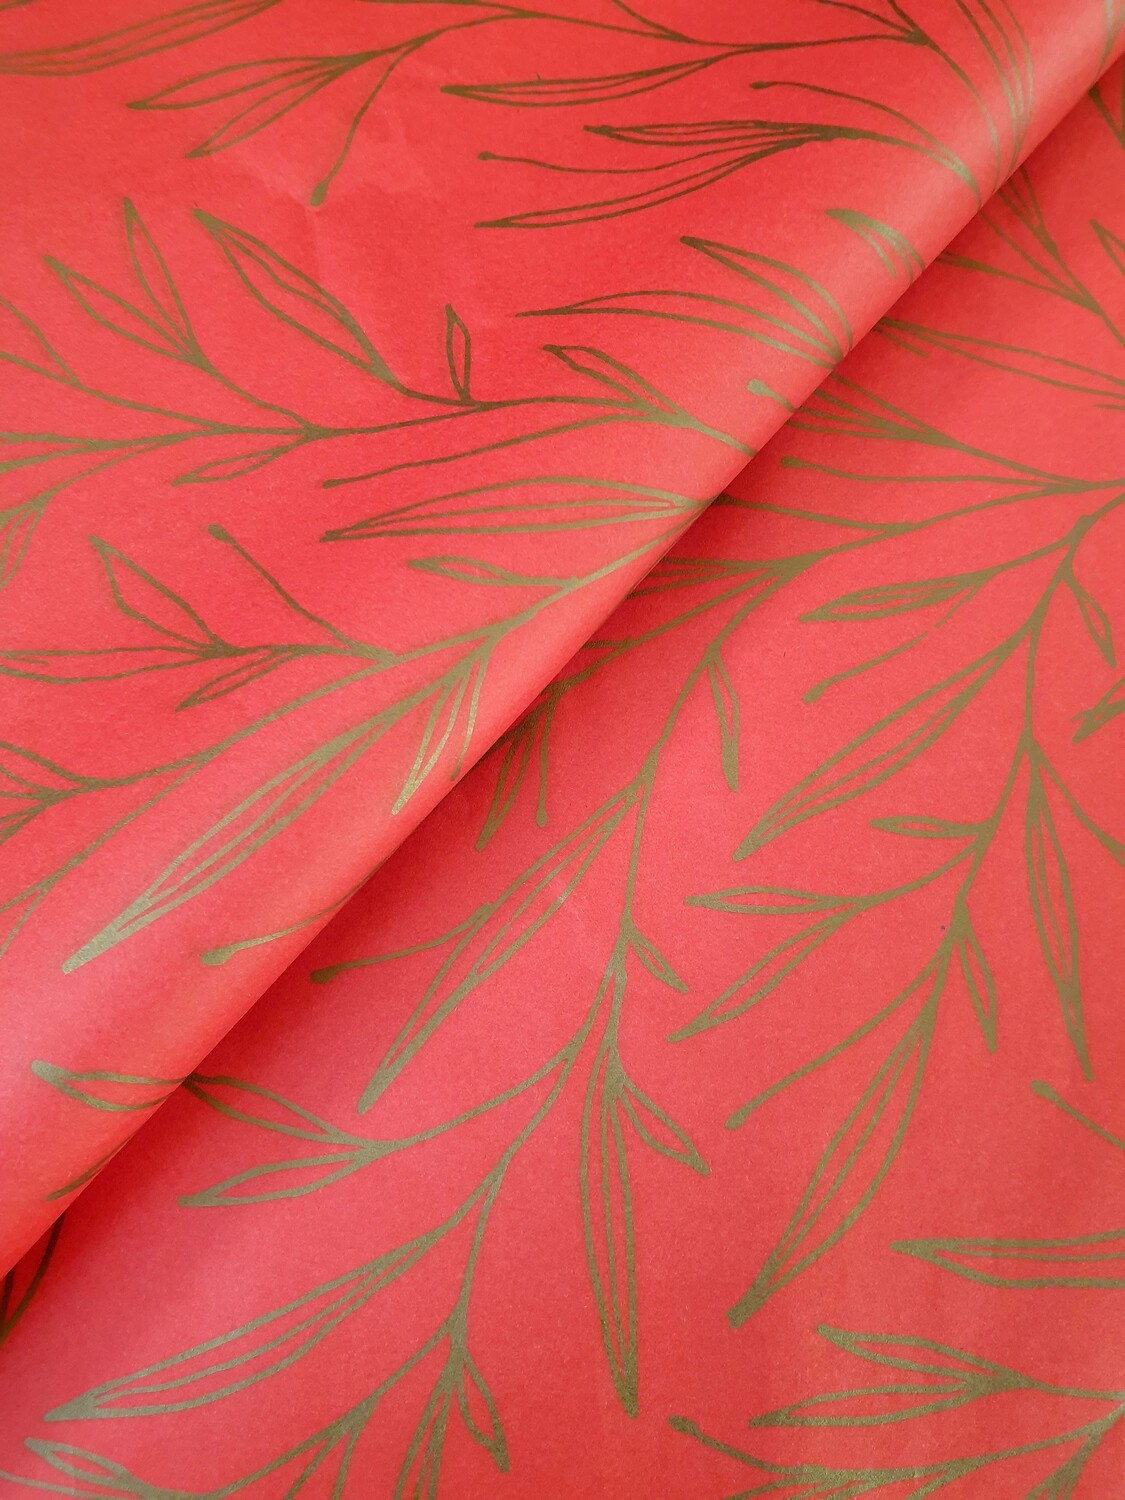 Tissue Paper - Christmas Leaf - Gold on Red - (Qty 25)